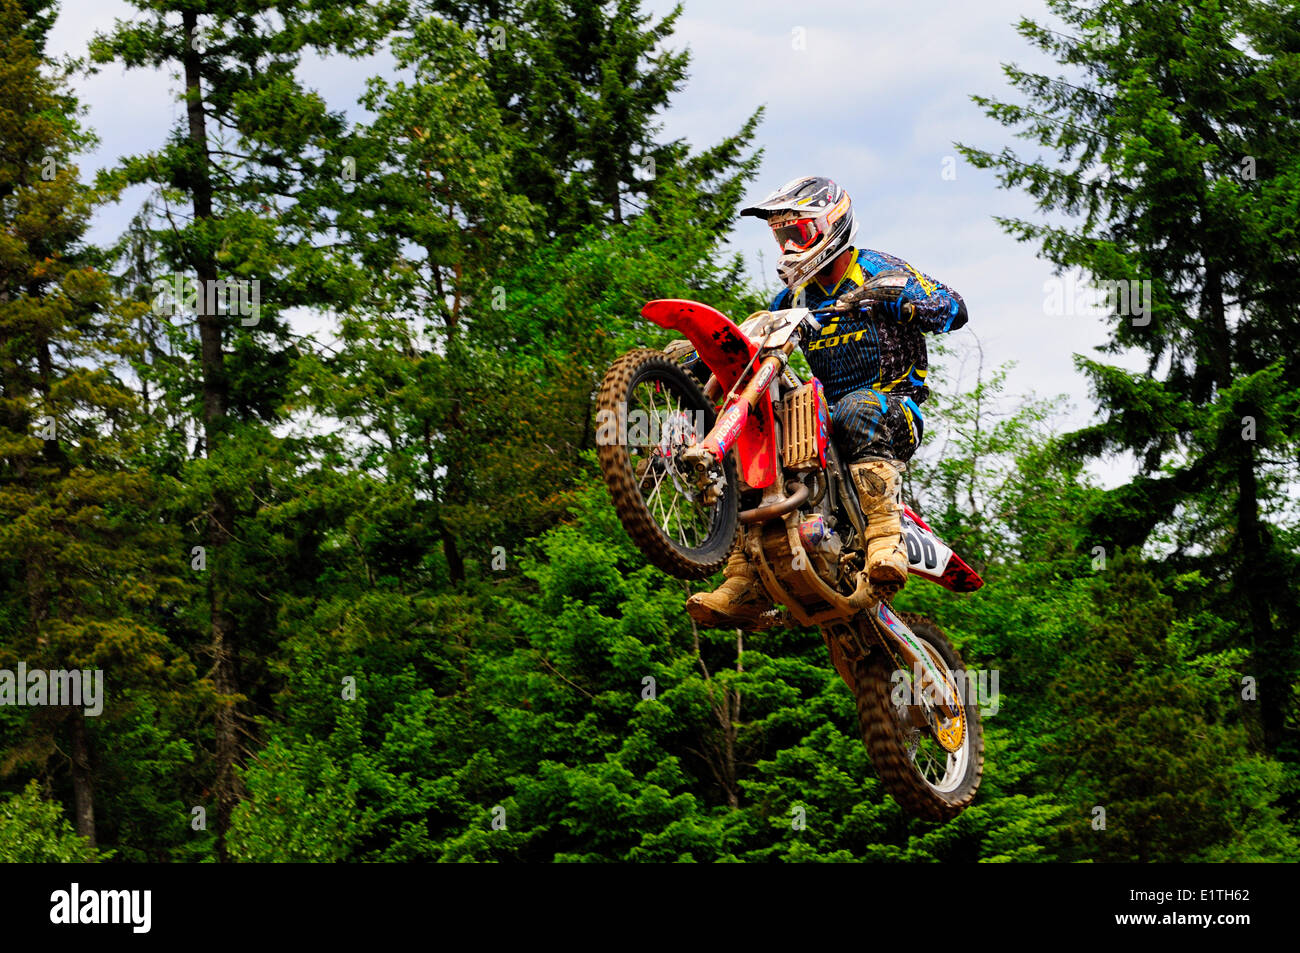 A motocross rider gets some air during a jump at the Monster Energy Motocross Nationals at the Wasteland track in - Stock Image